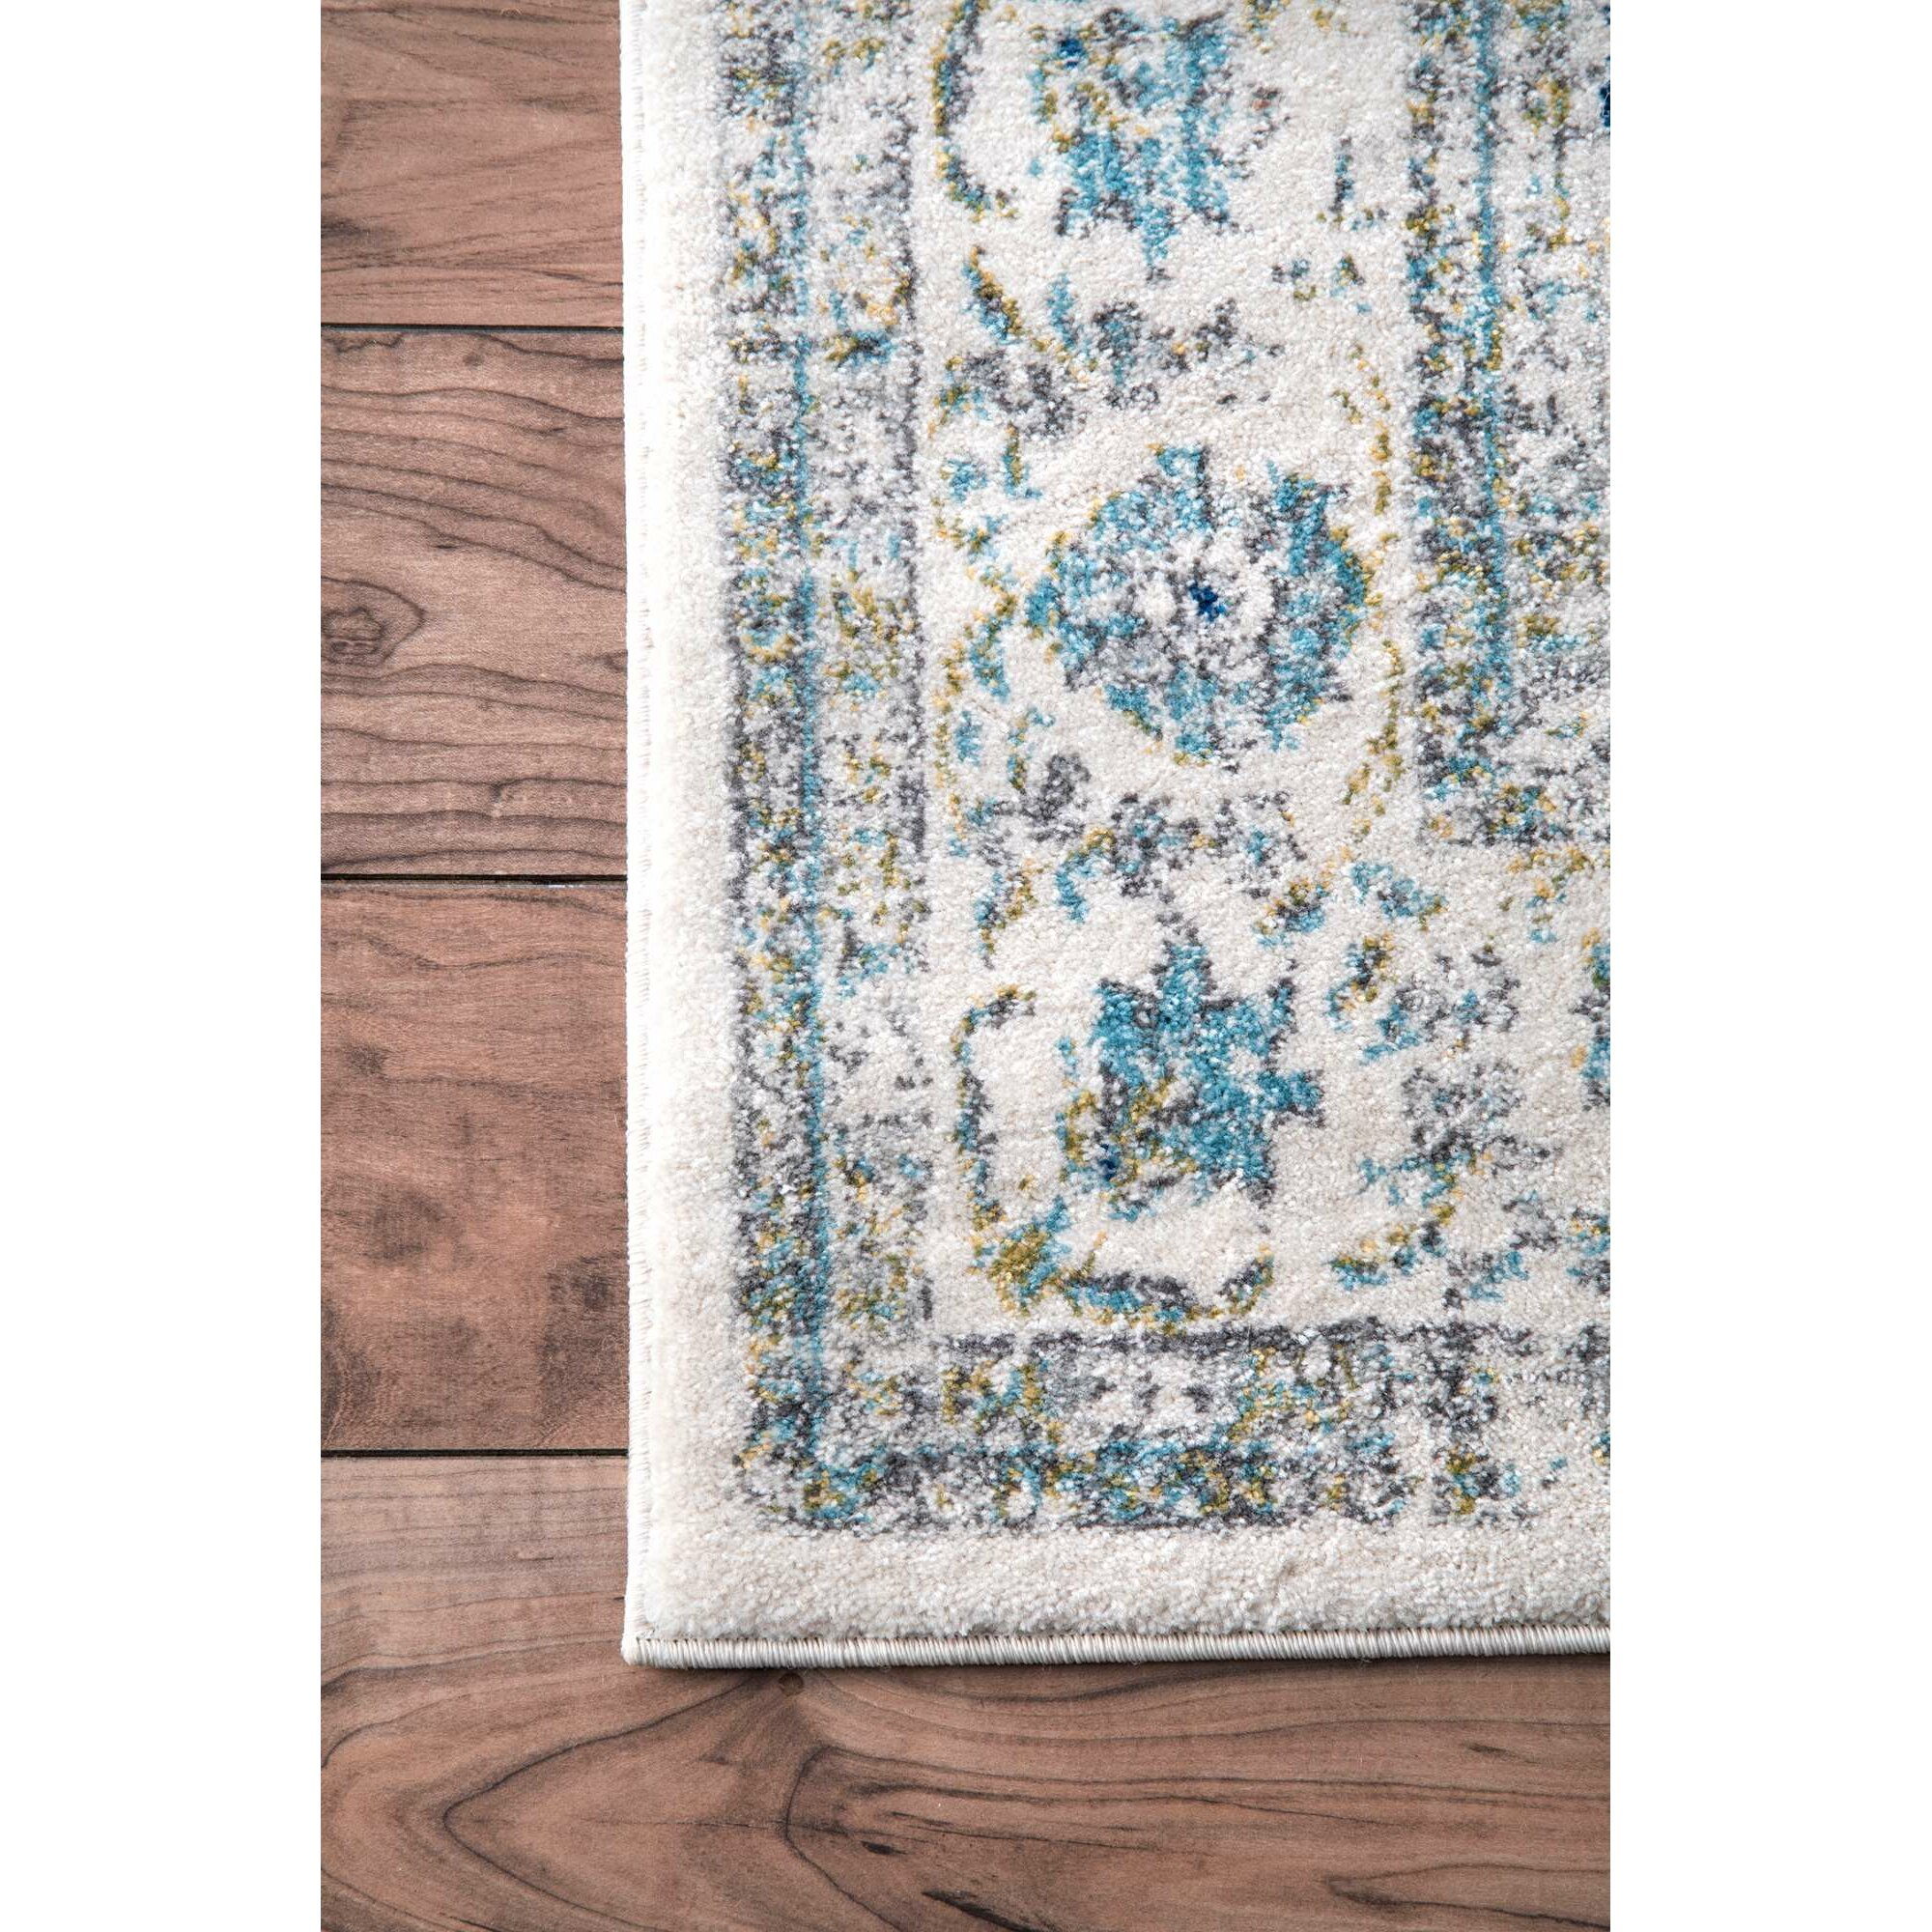 nuLOOM Verona Blue Area Rug amp Reviews Wayfair : nuLOOM Verona Blue Area Rug from www.wayfair.com size 2000 x 2000 jpeg 1032kB